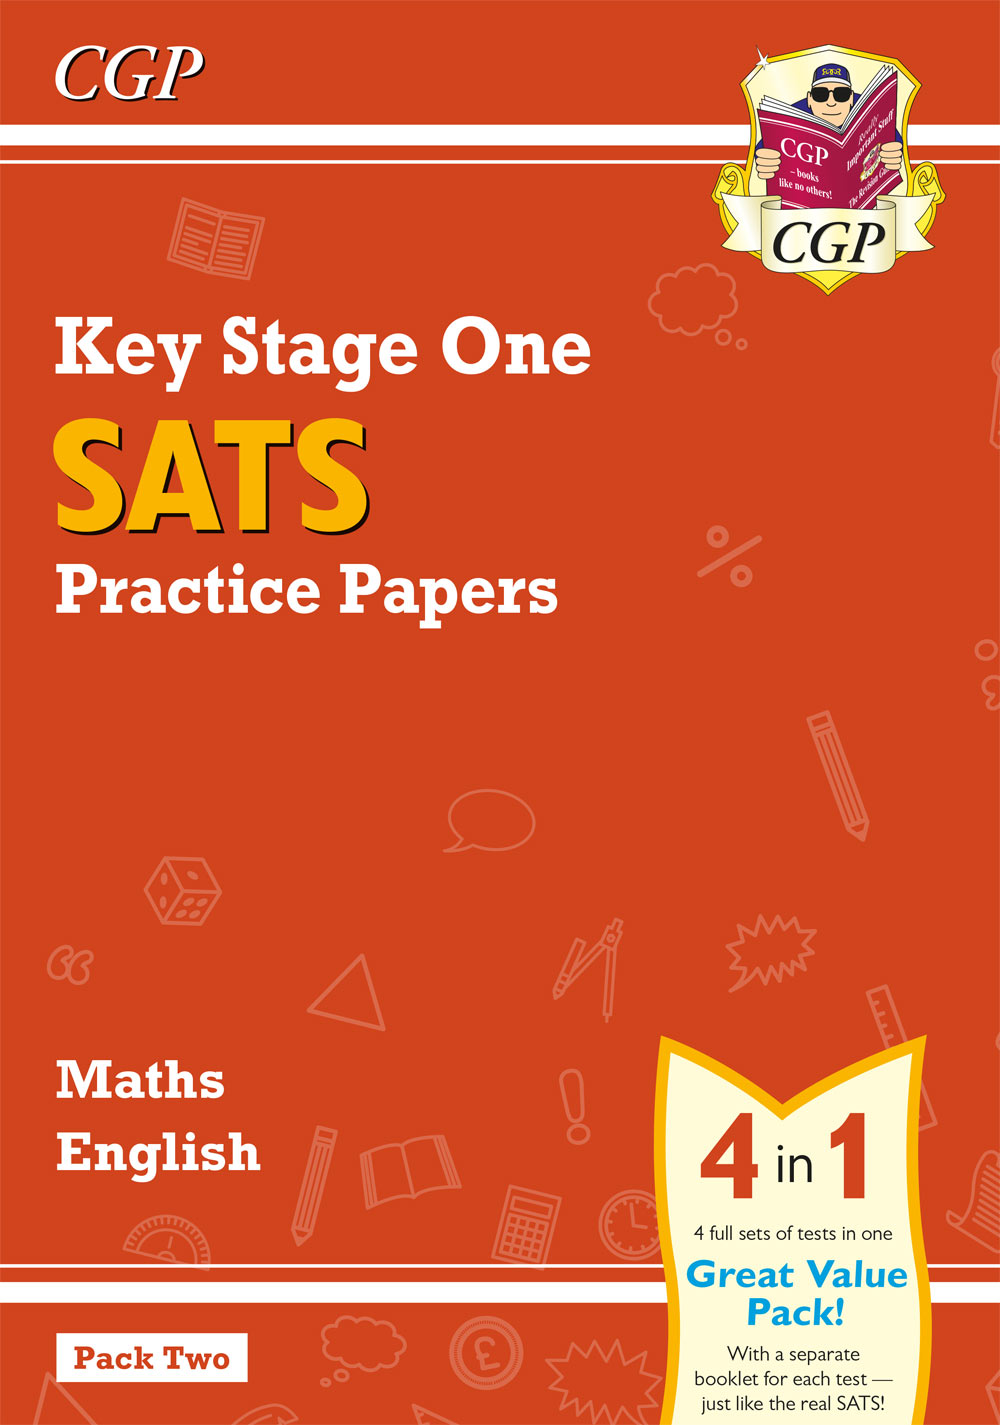 MEB213 - New KS1 Maths and English SATS Practice Papers Pack (for the 2019 tests) - Pack 2